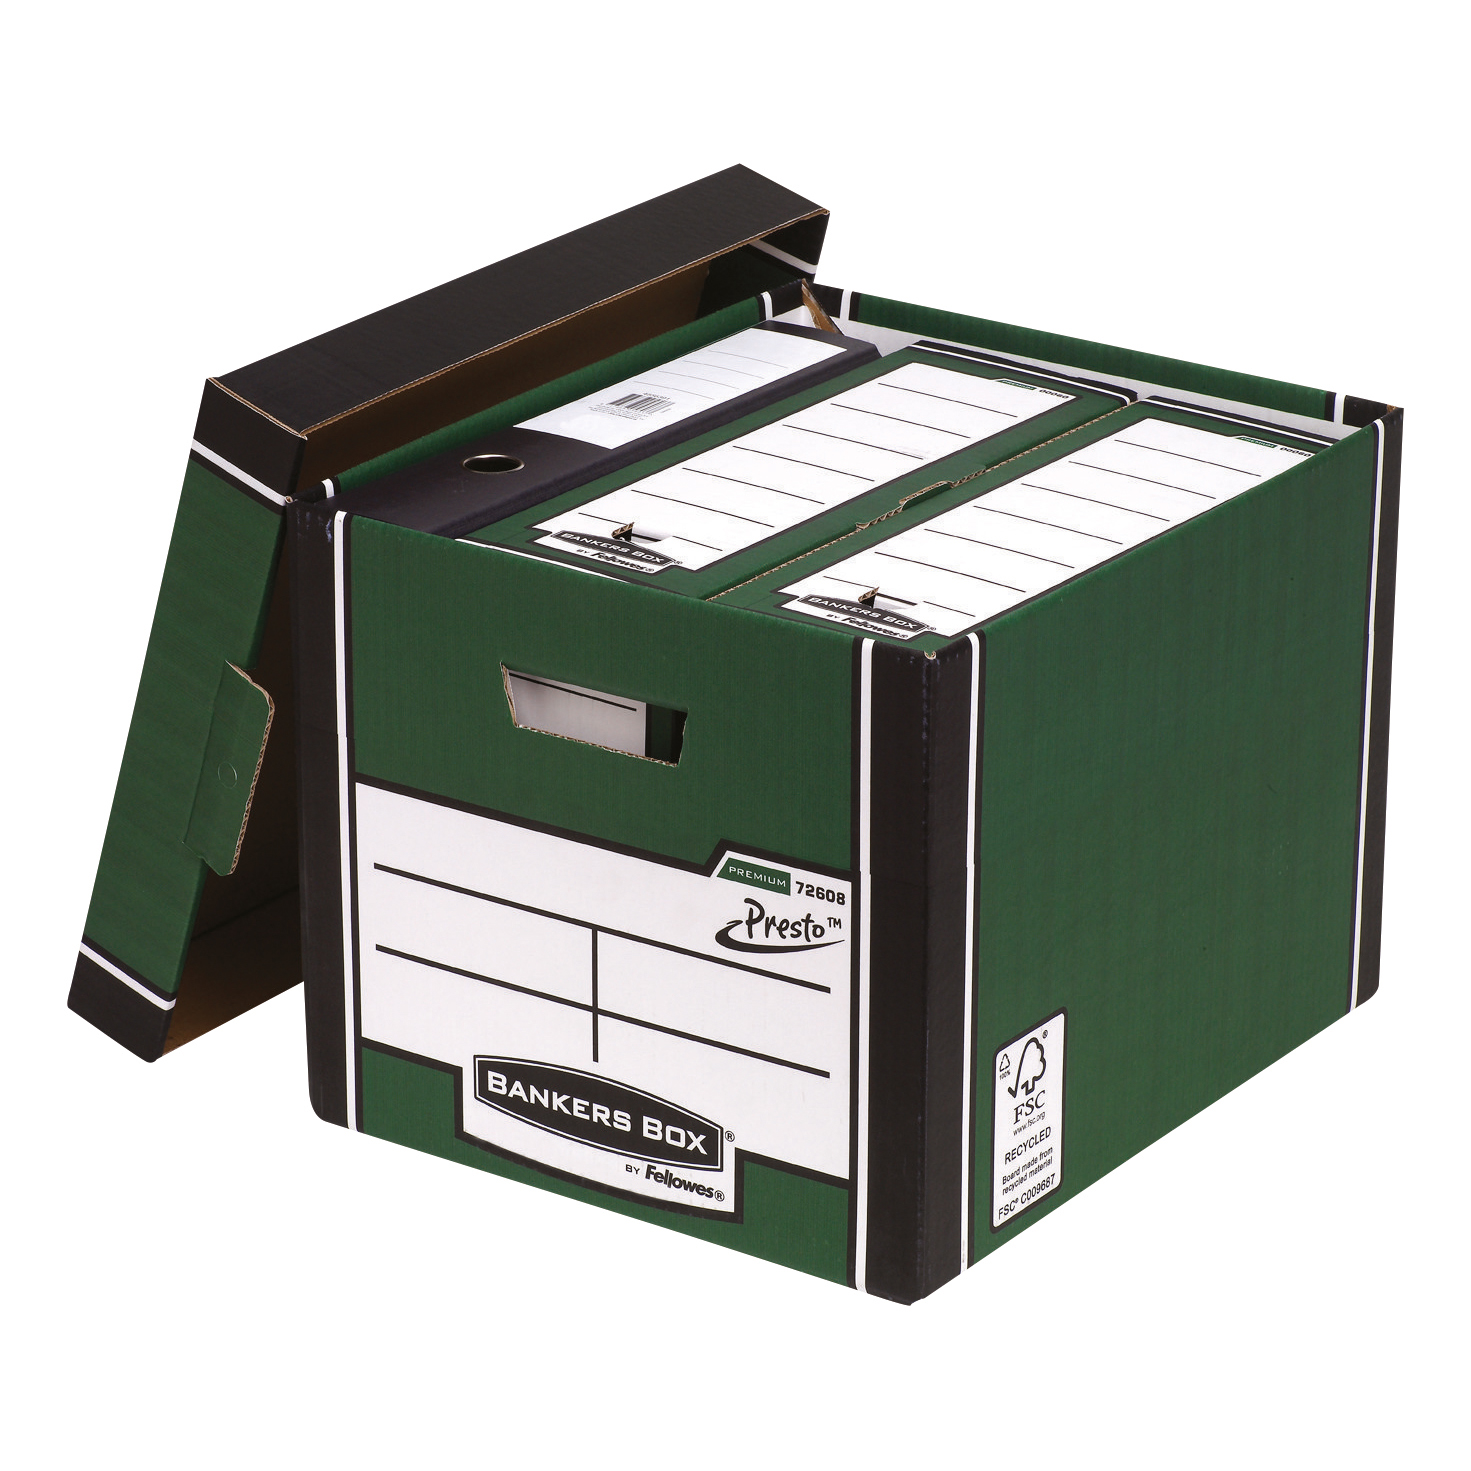 Storage Boxes Bankers Box Premium Storage Box (Presto) Tall Green FSC Ref 7260802 Pack 10